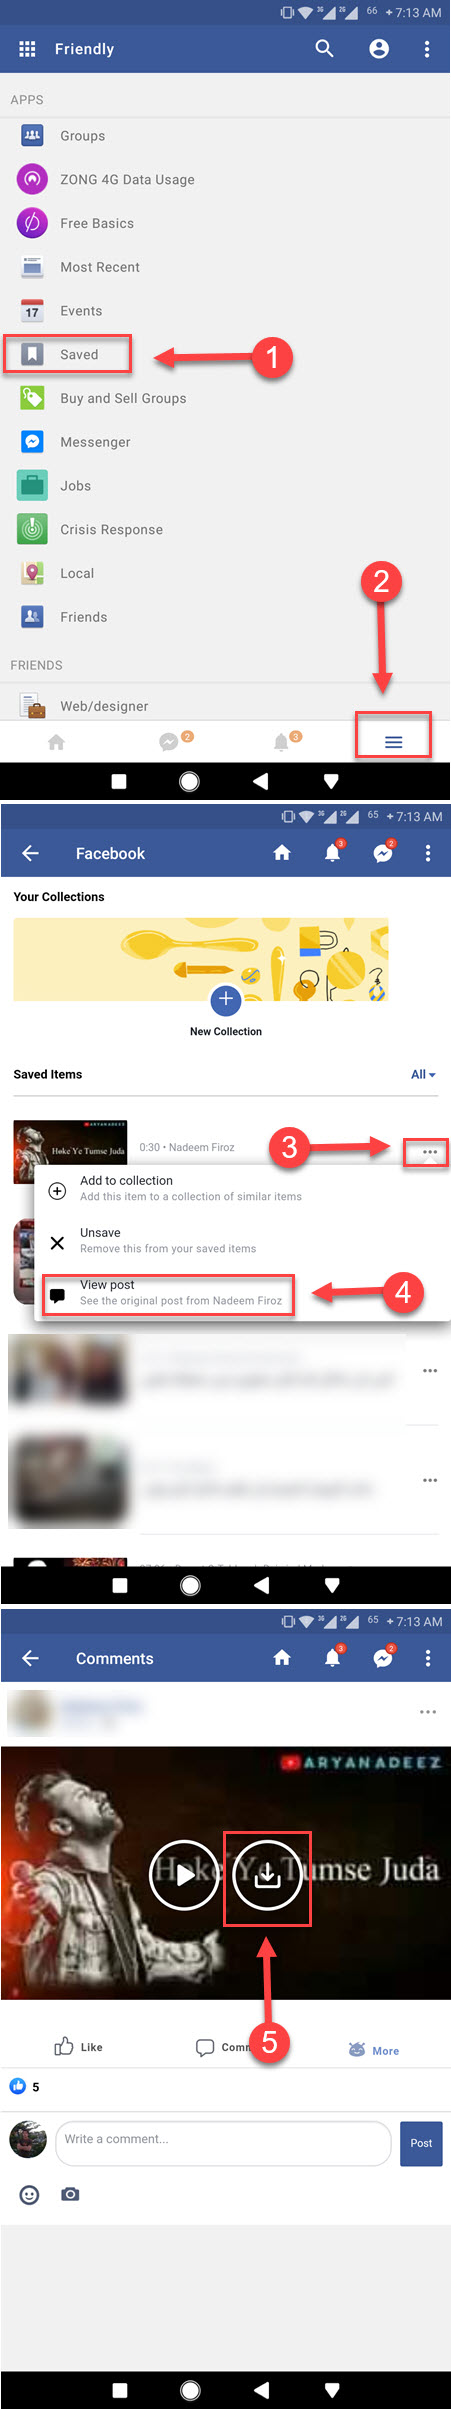 How to Save Video from Messenger to Gallery - SociallyPro